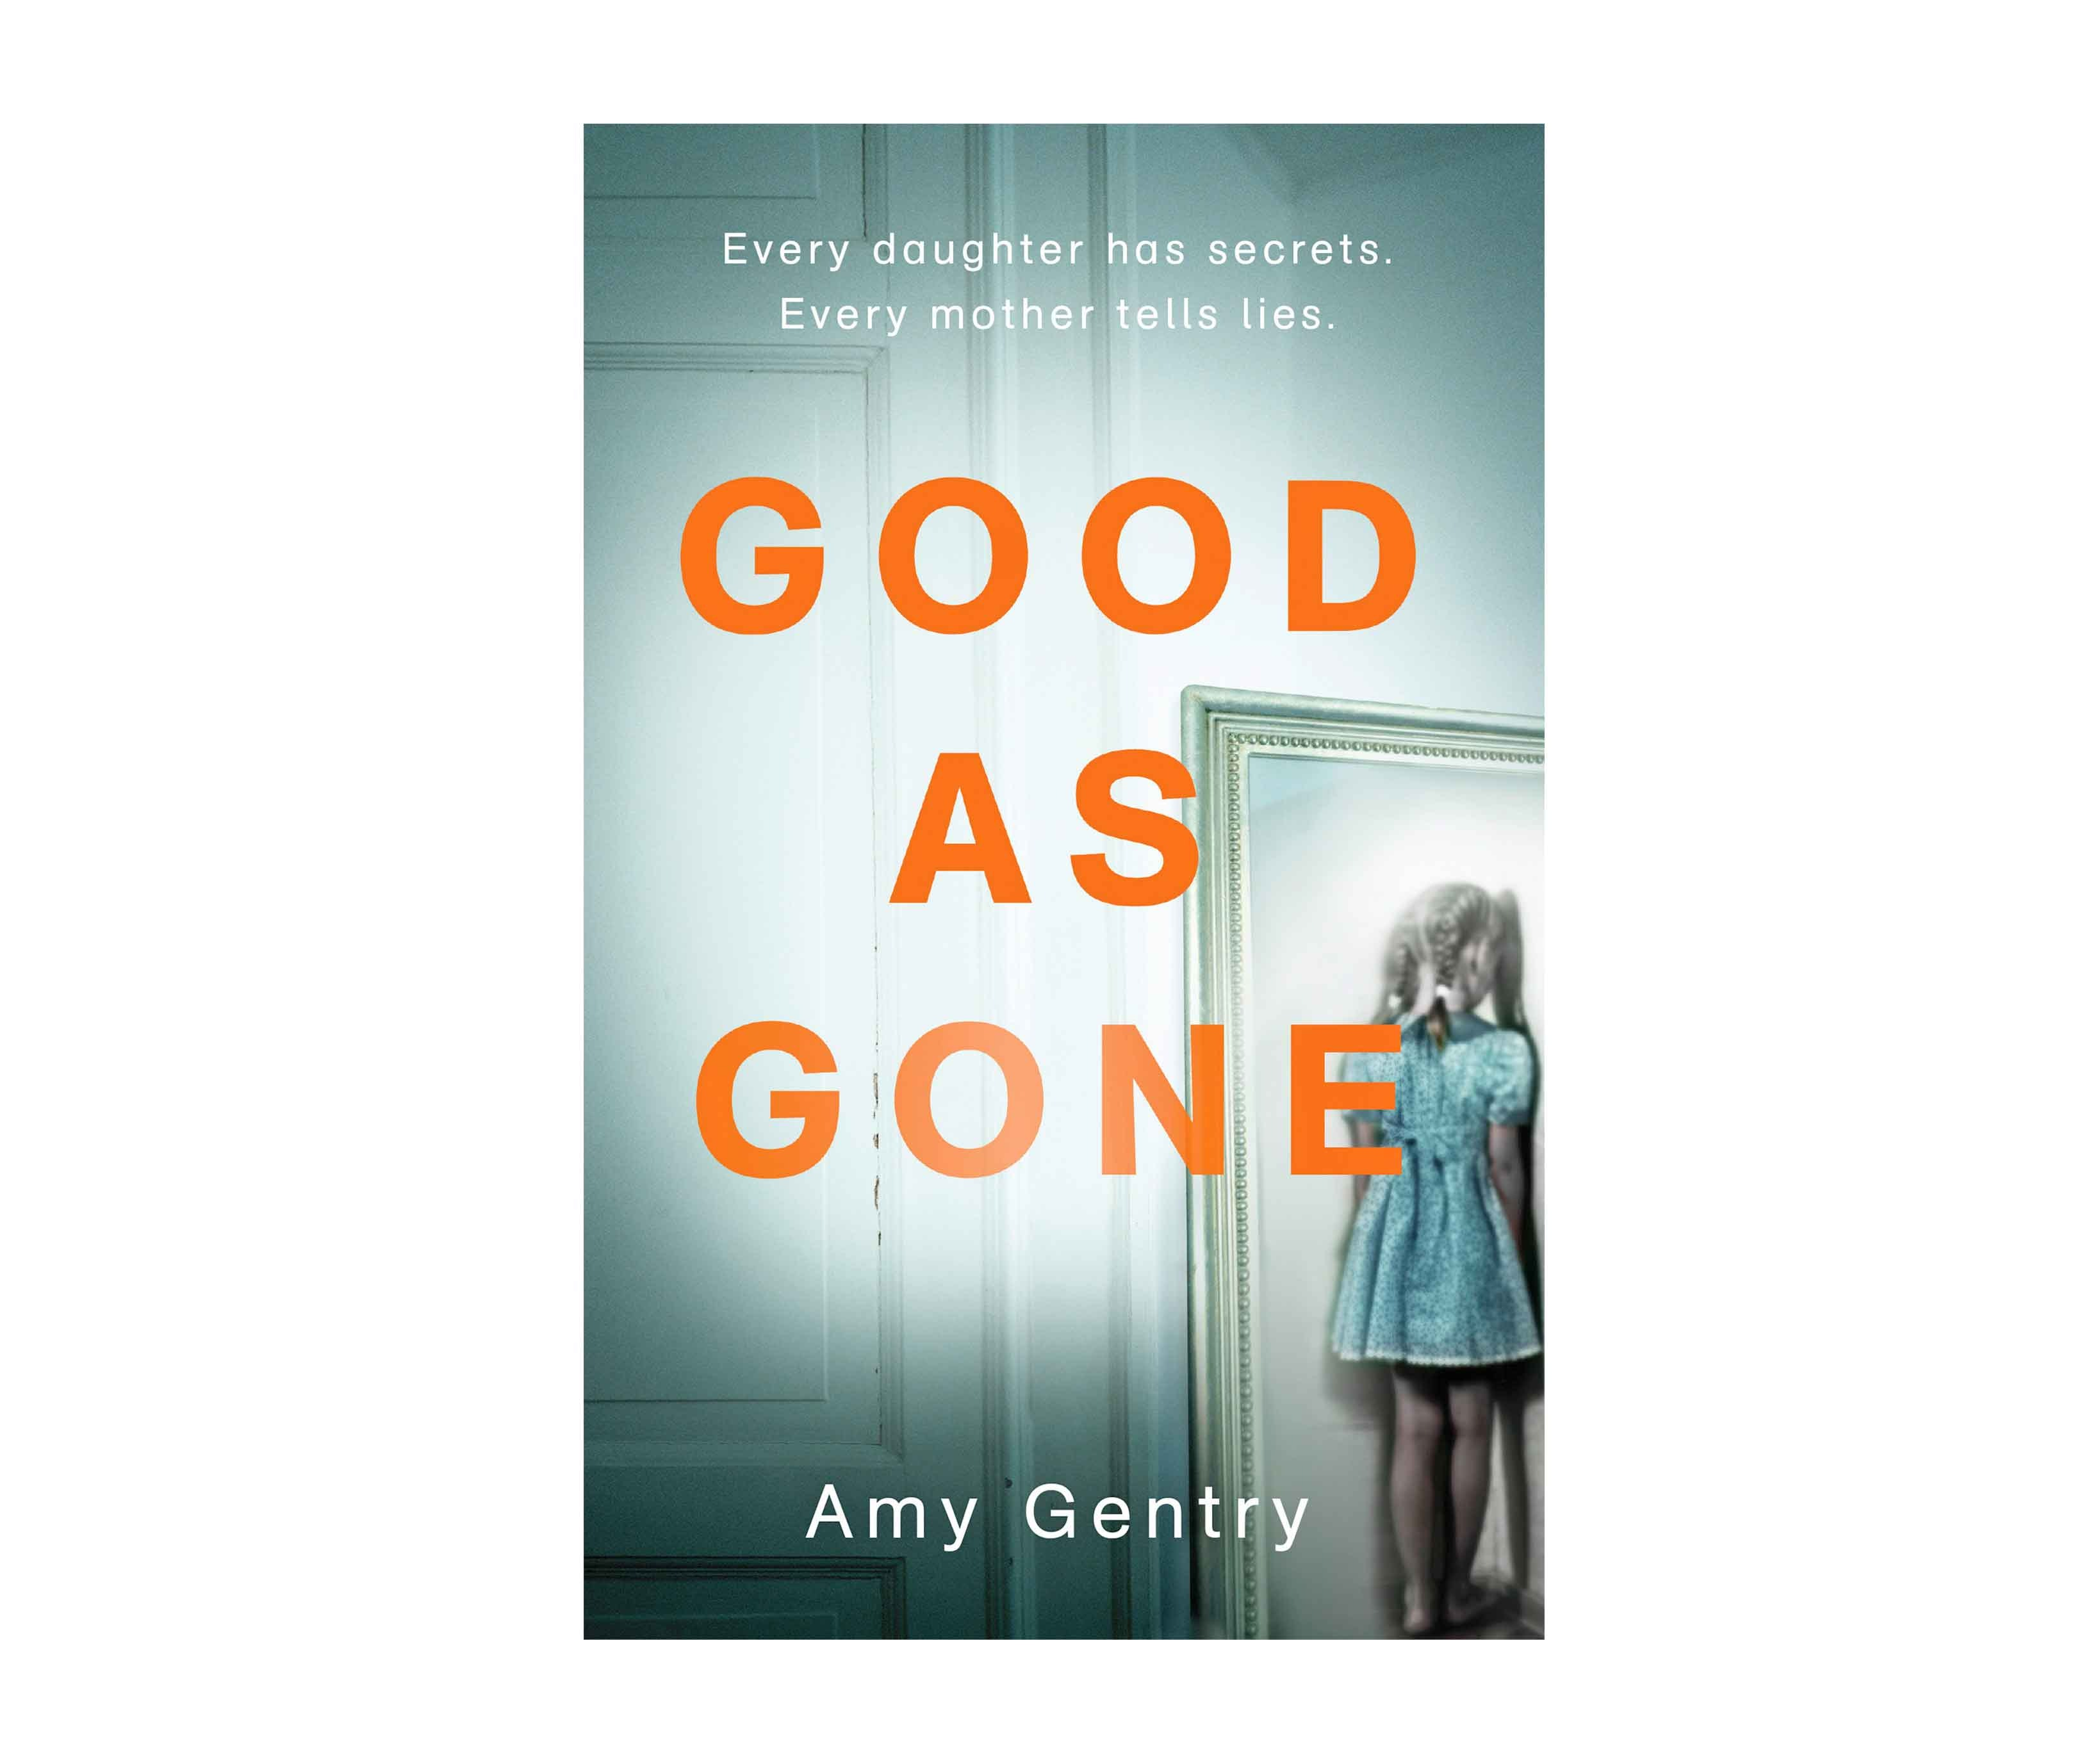 Good as Gone book sweepstakes